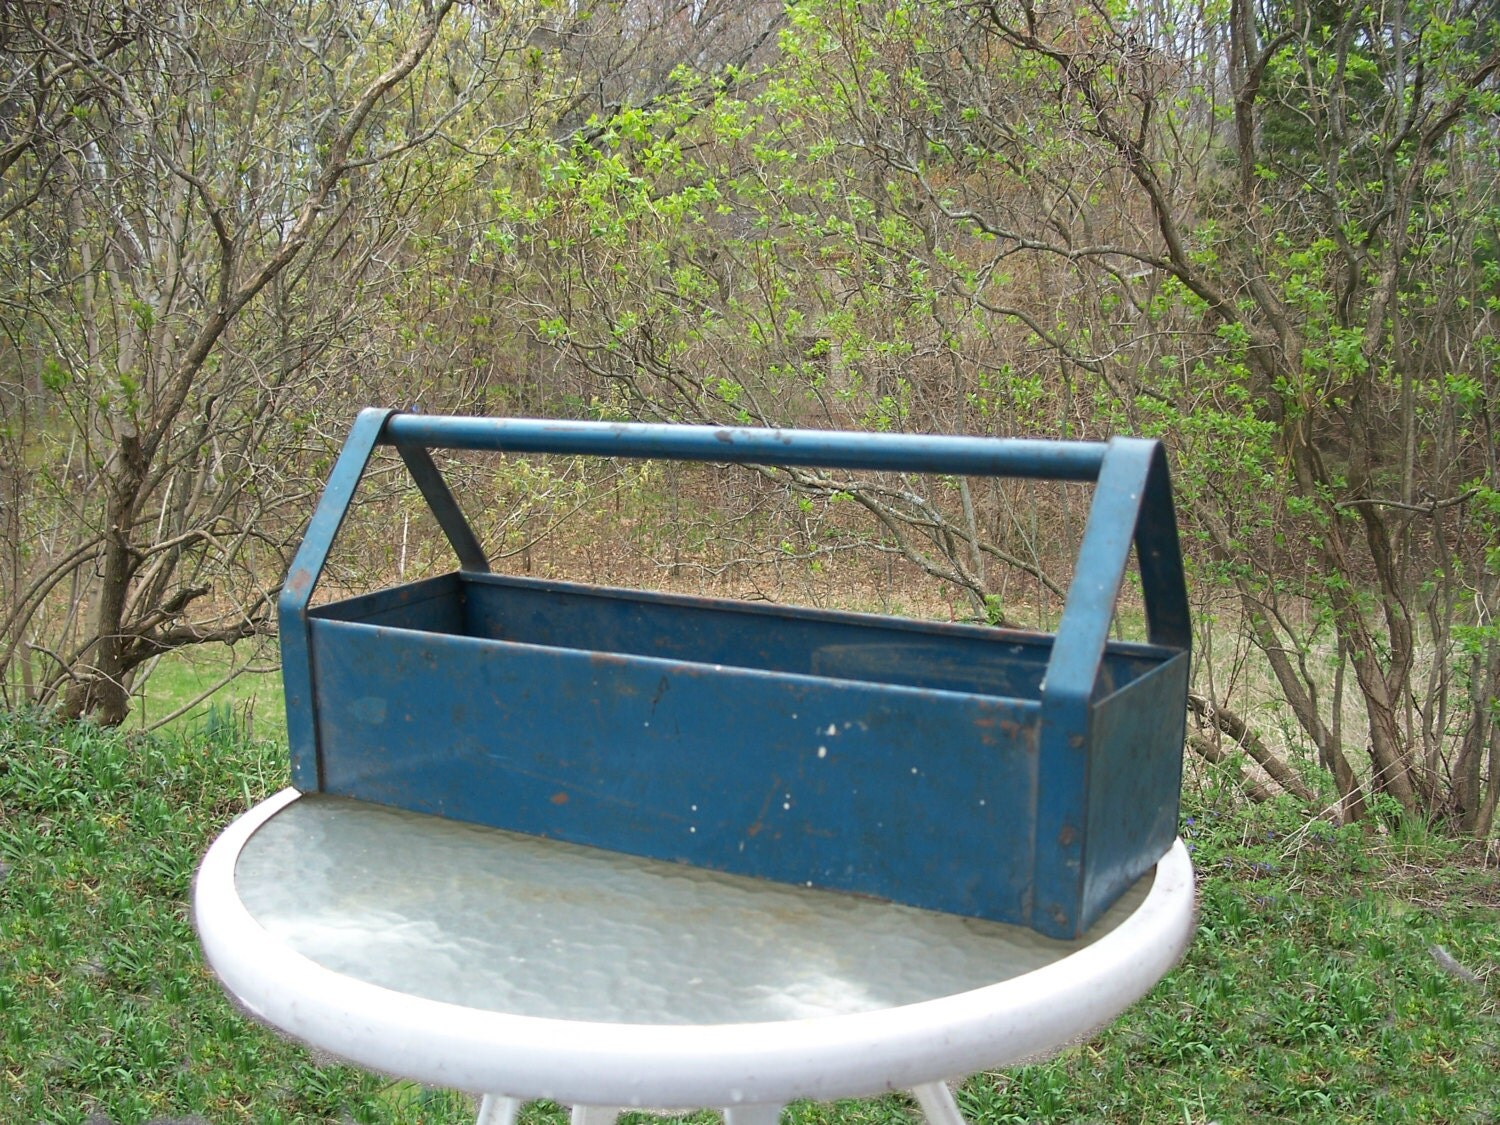 Vintage rustic rusty blue metal tote tool carrier box caddy for Small garden tool carrier